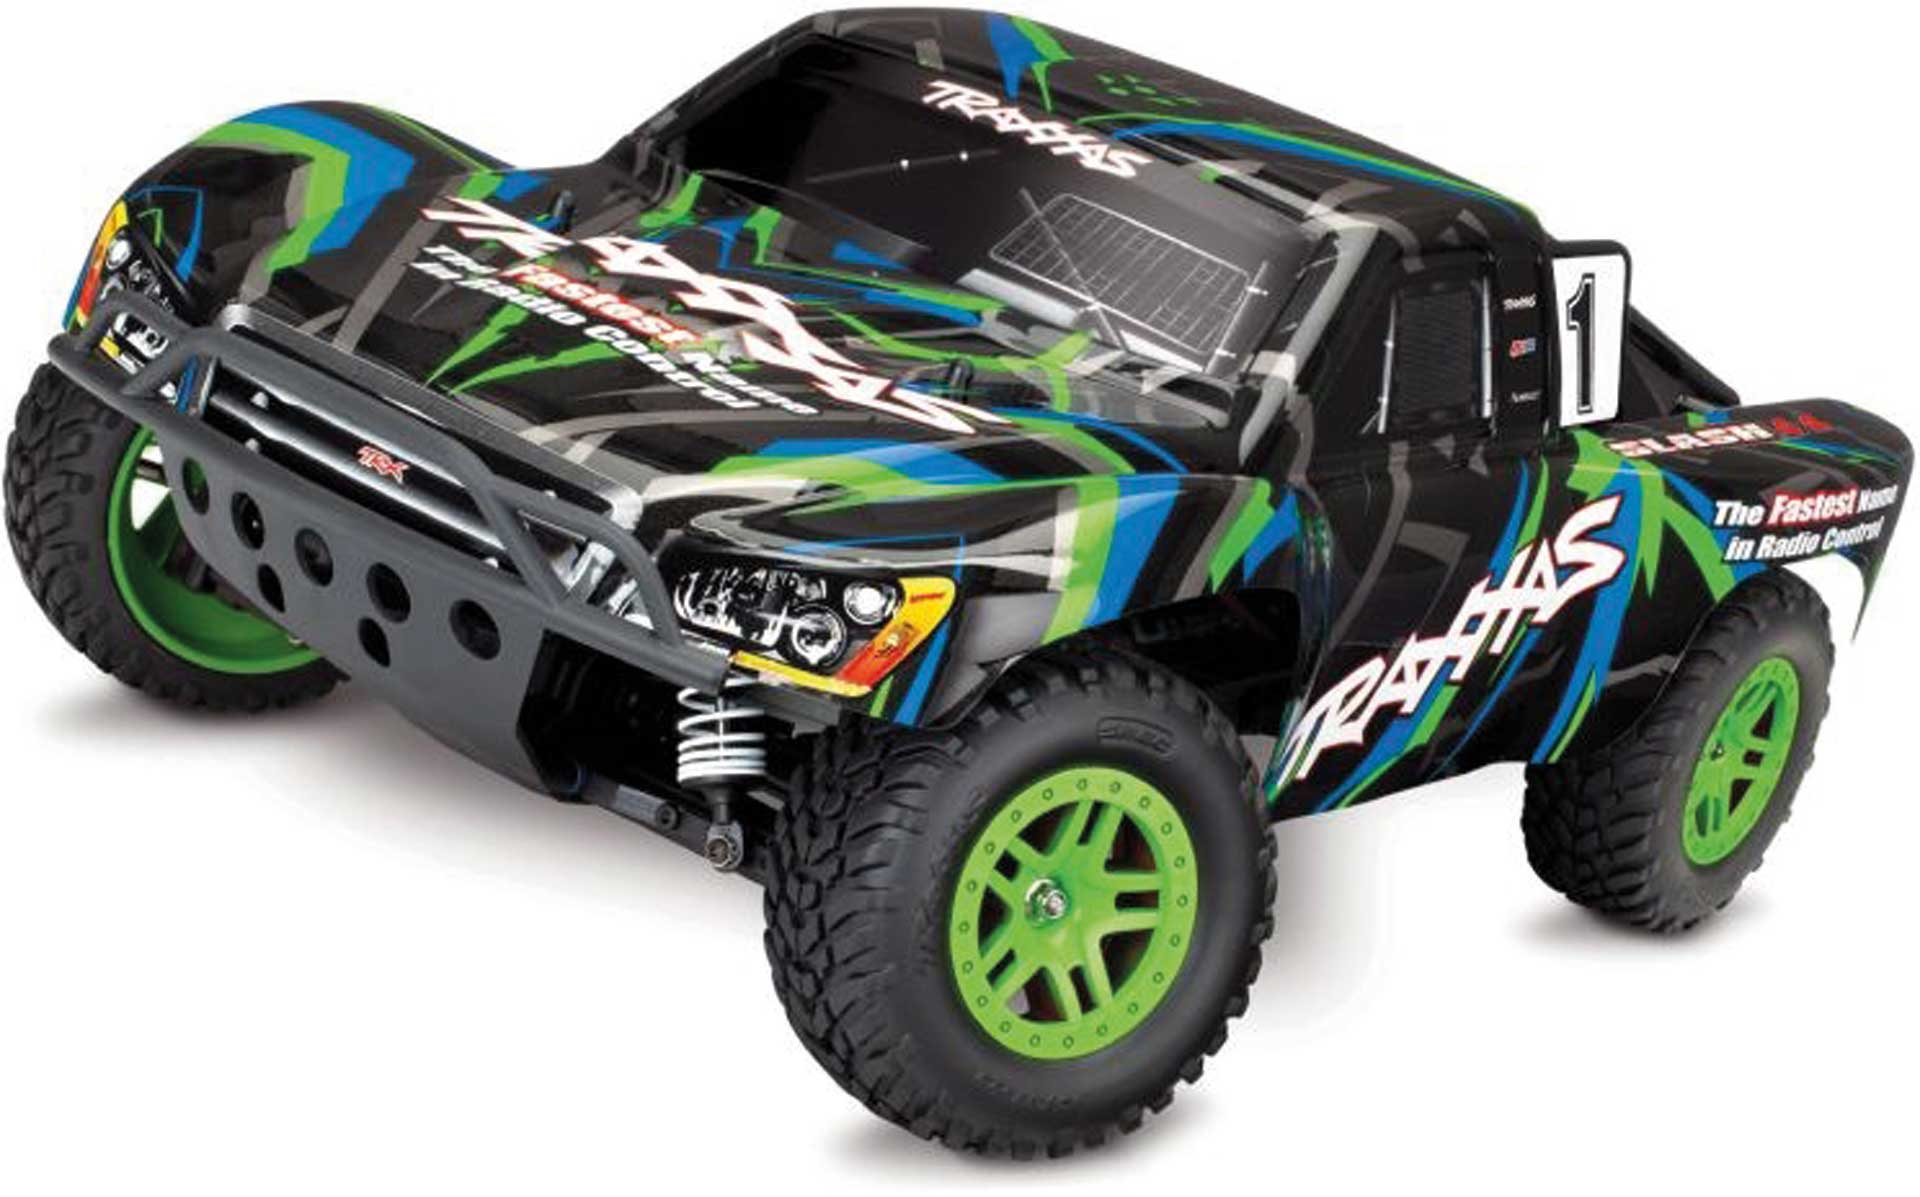 Traxxas SLASH 4X4 GRÜN/BLAU RTR +12V-LADER+AKKU 1/10 4WD SHORT-COURSE-RACE-TRUCK BRUSHED